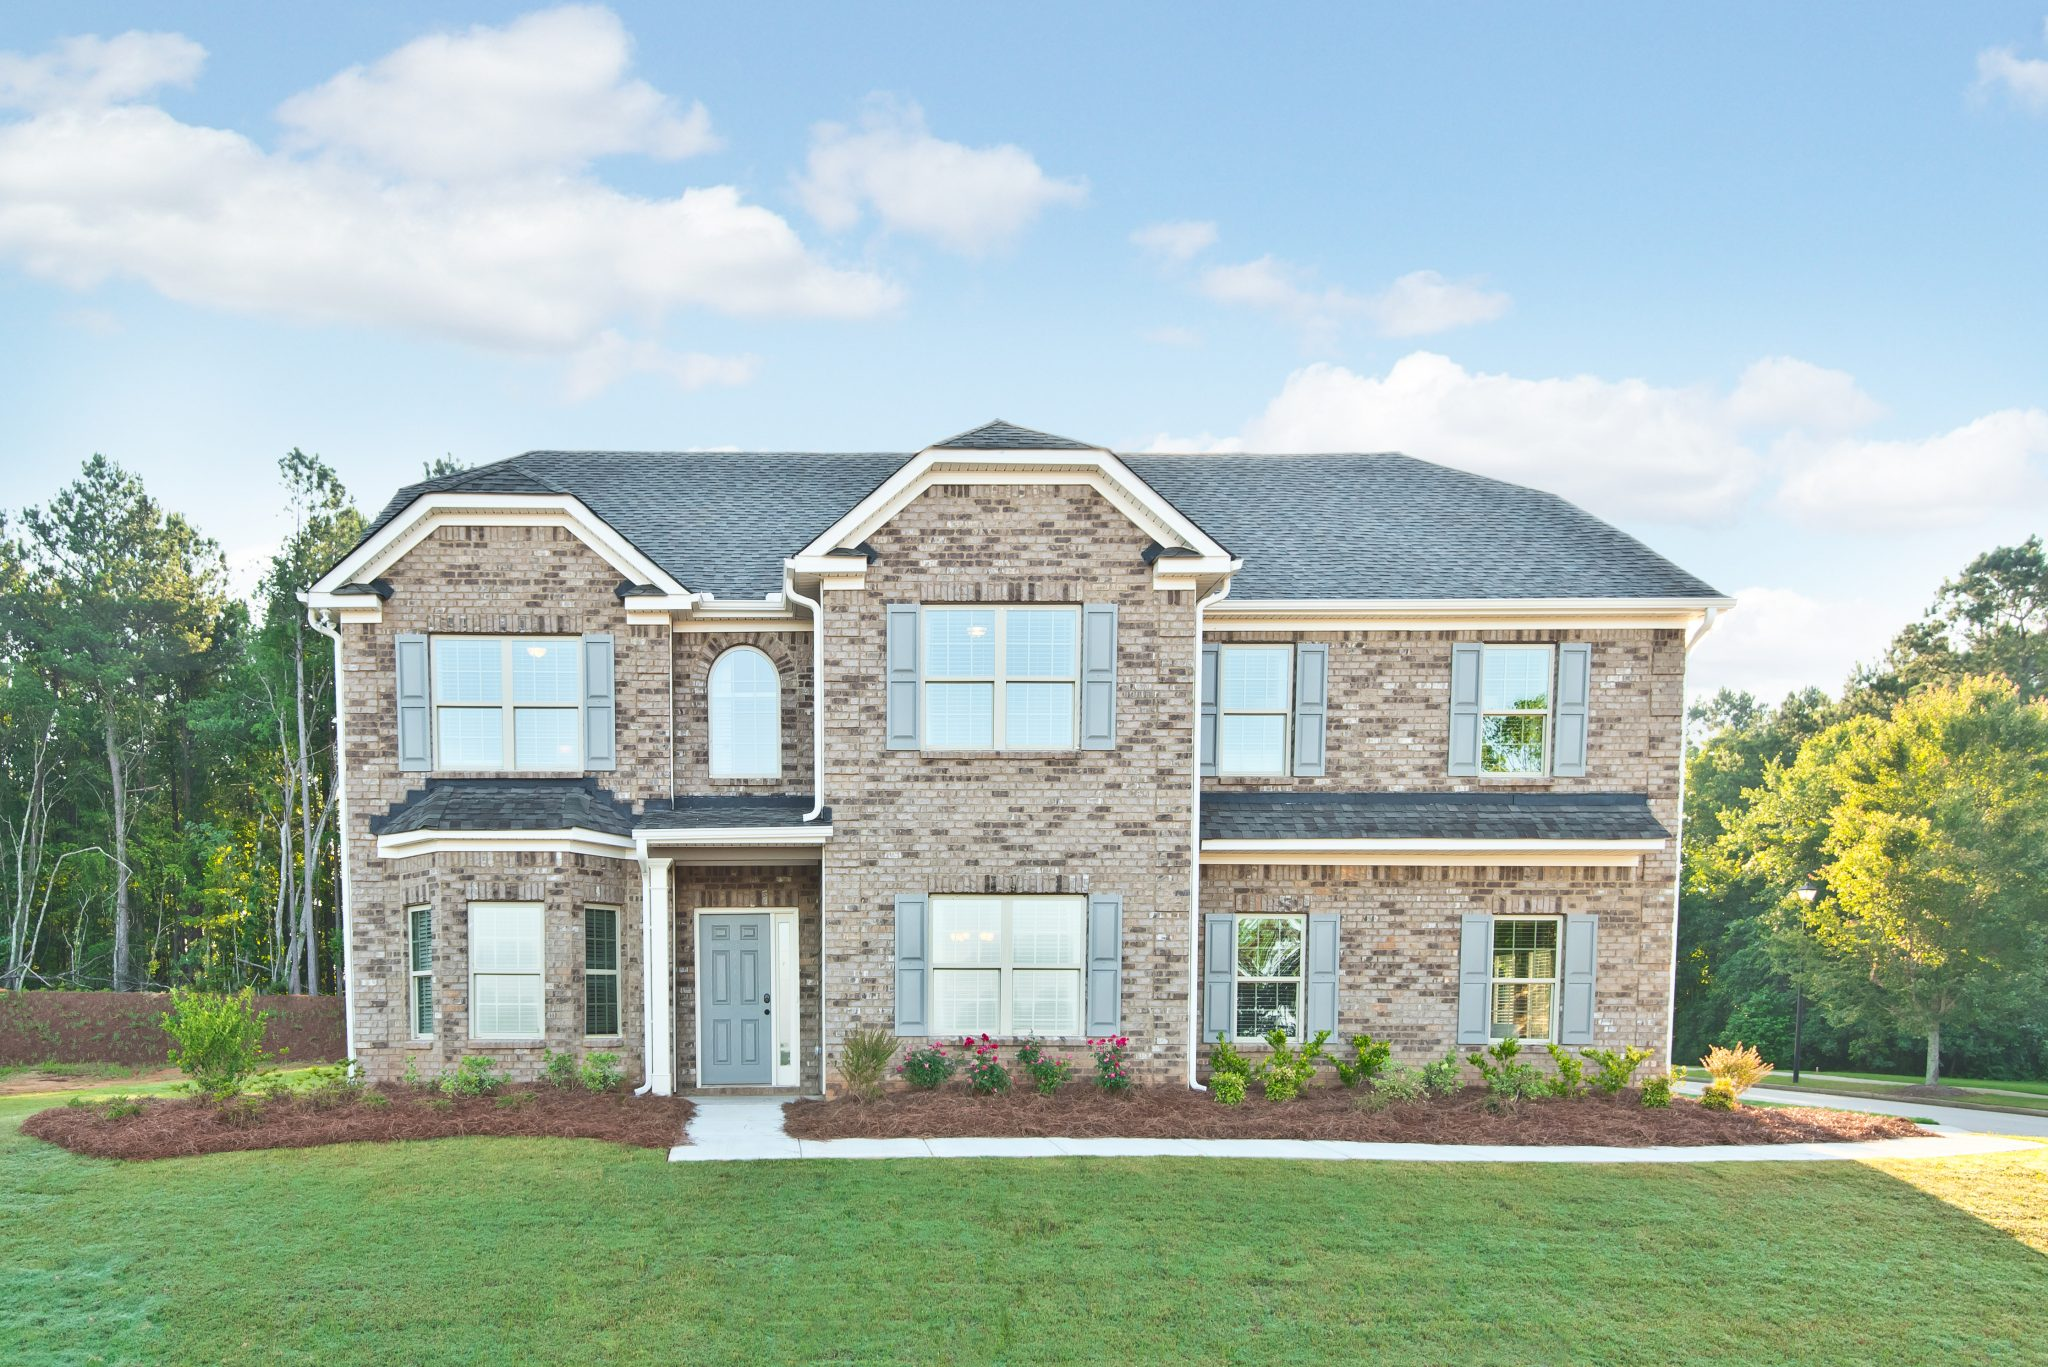 New Homes in Ozora Lake in Loganville